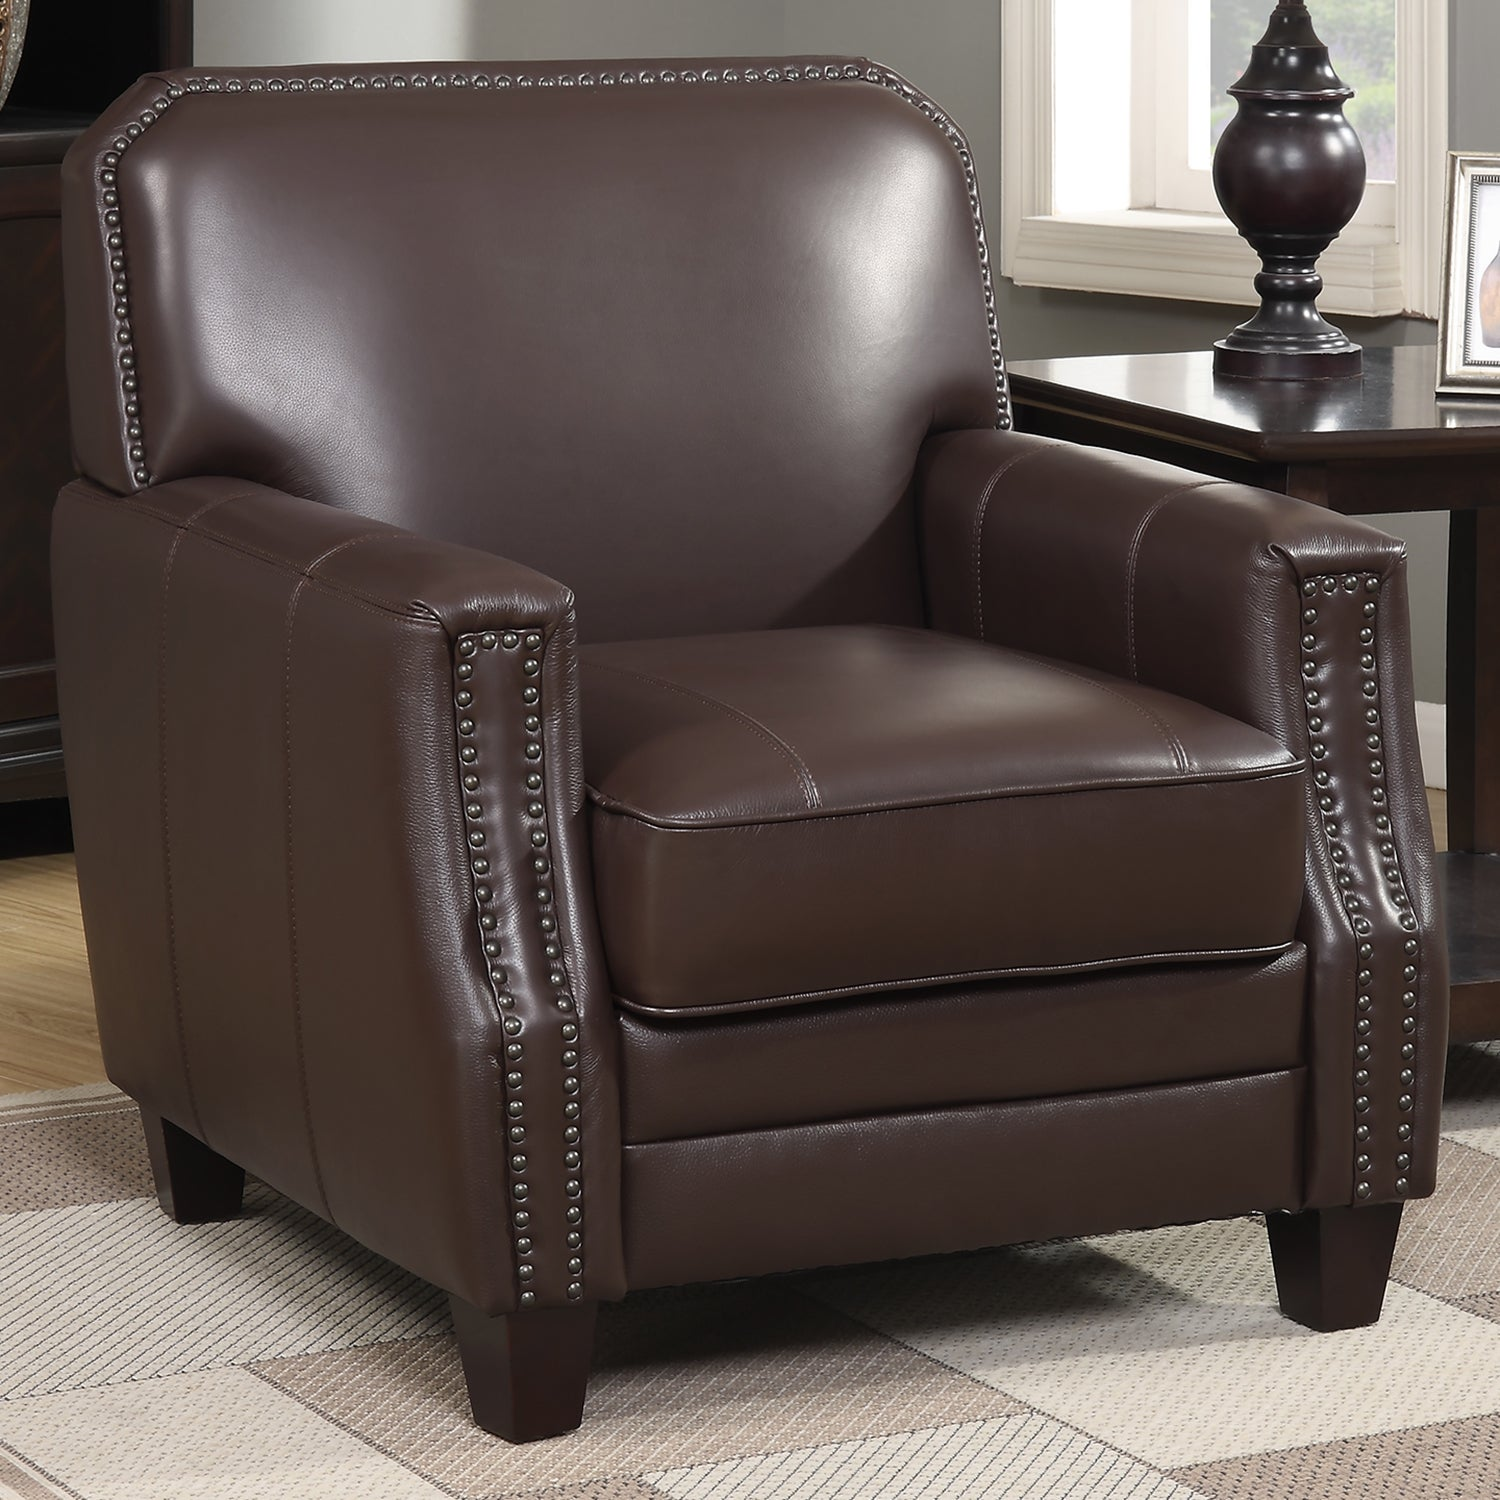 Full-grain Leather Club Arm Chair - Free Shipping Today - Overstock.com -  19428766